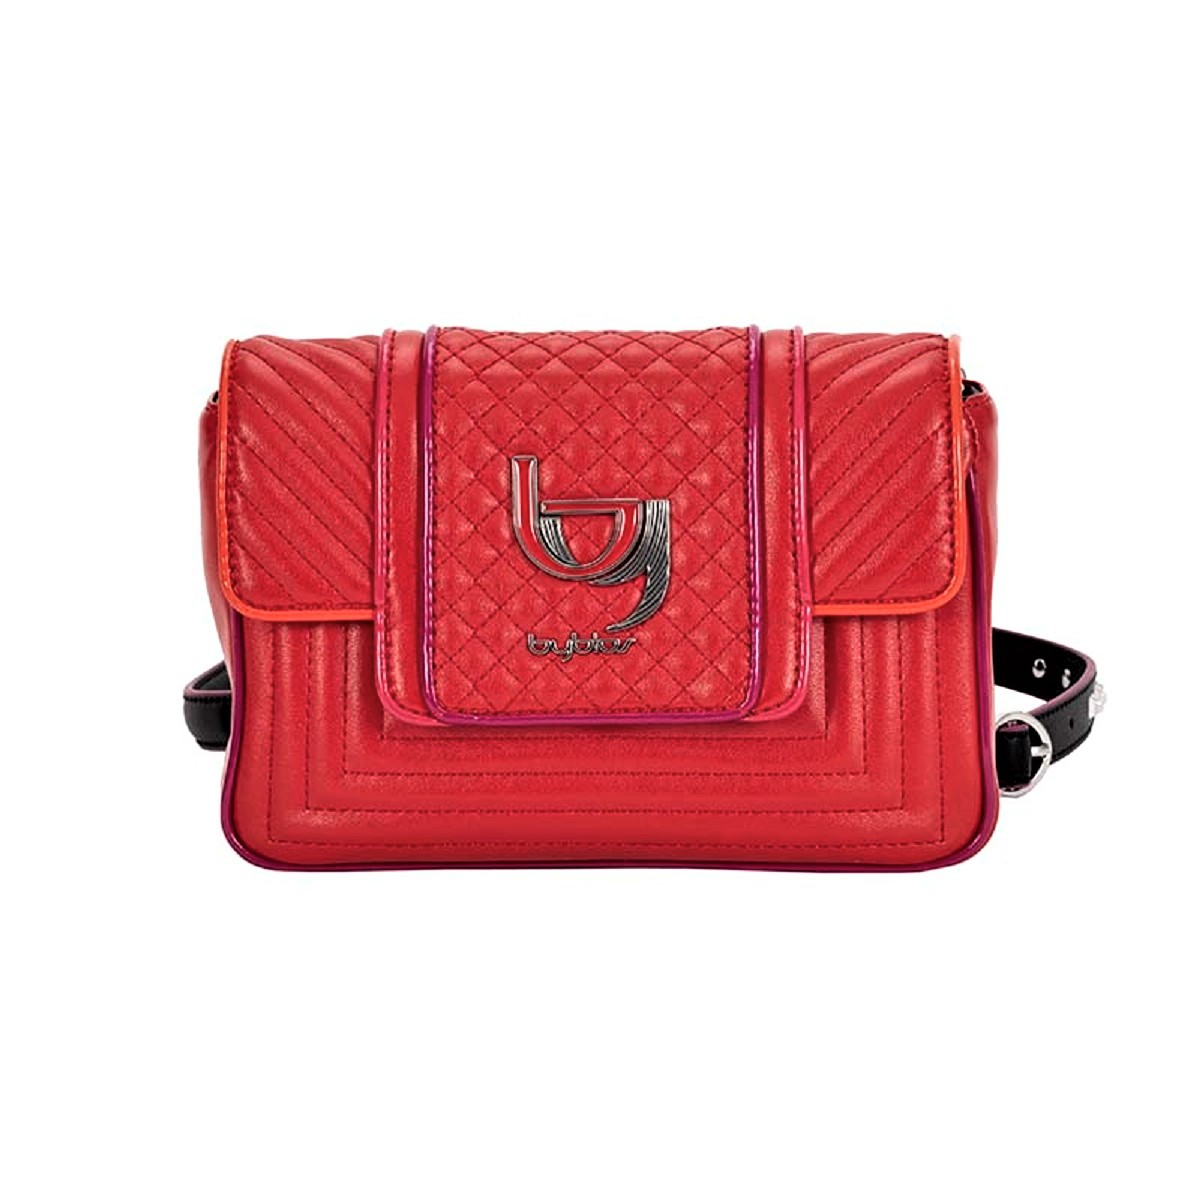 BYBLOS BORSA POCHETTE DONNA 2WB0055 QUINCY SHOULDER BAG SMALL CON TRACOLLINA